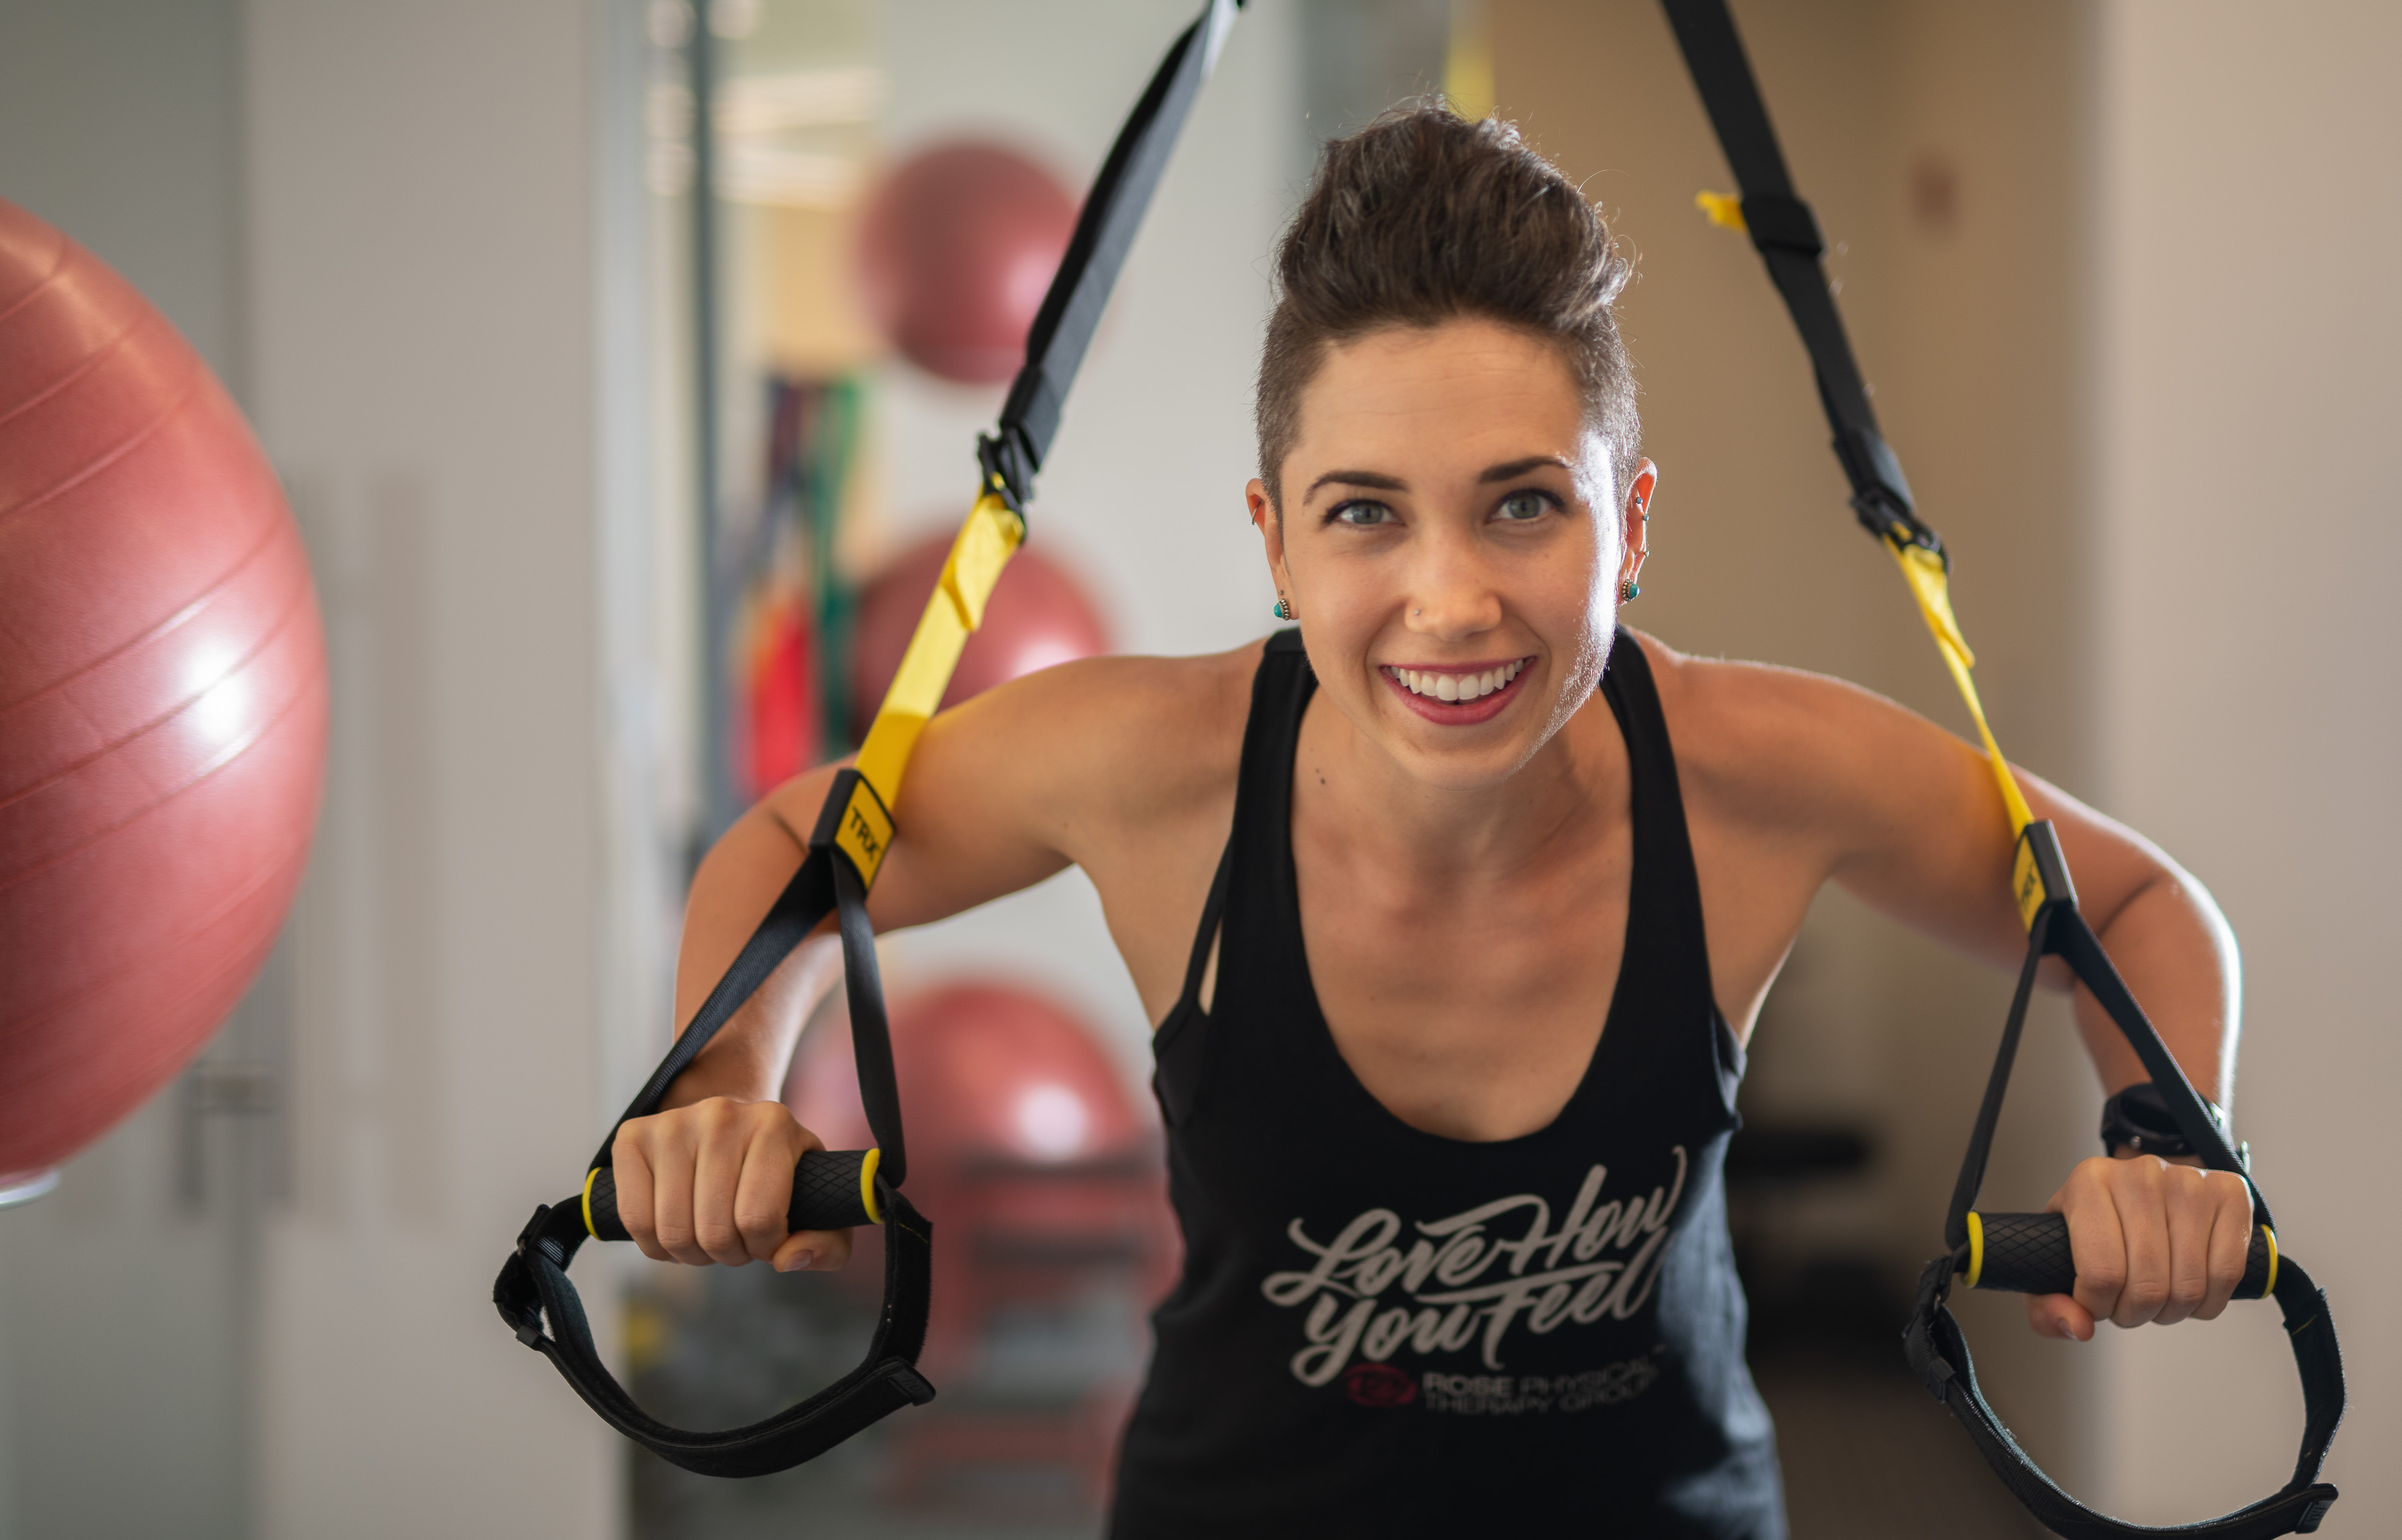 trx rose physical therapy washington dc